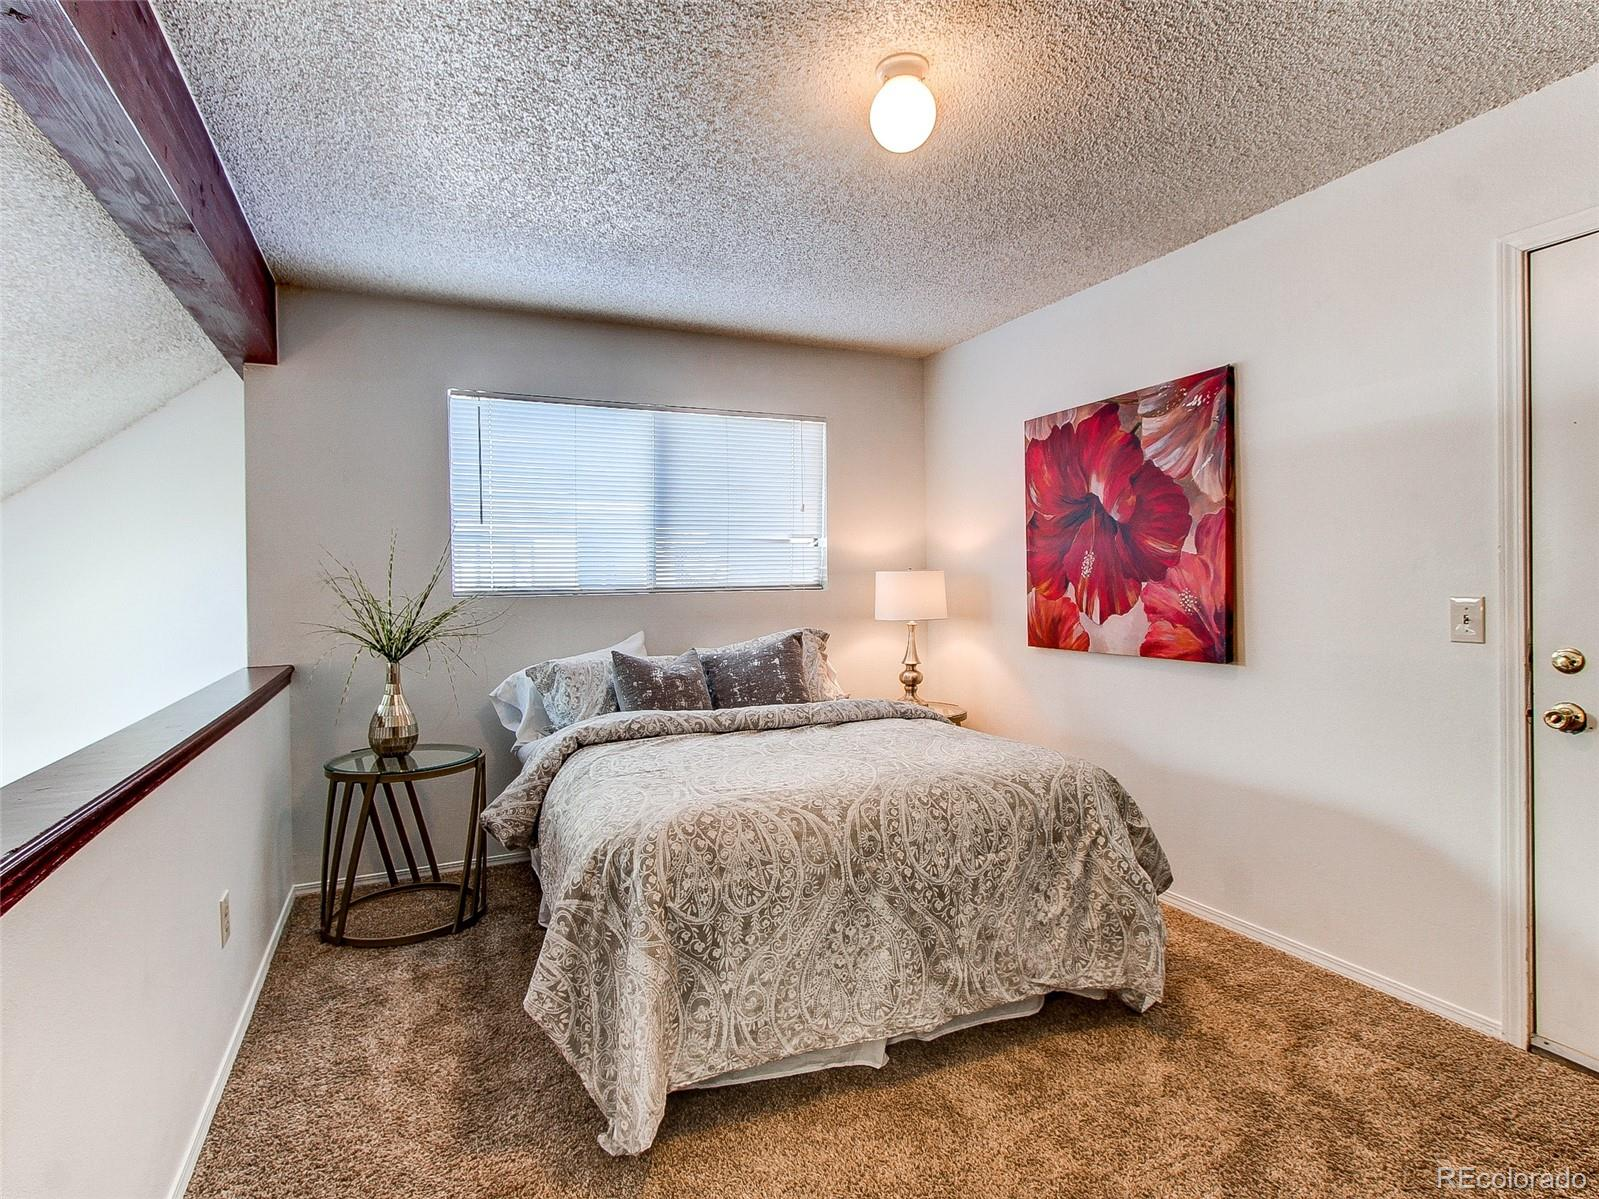 MLS# 7299791 - 14 - 1845 Kendall Street #207C, Lakewood, CO 80214